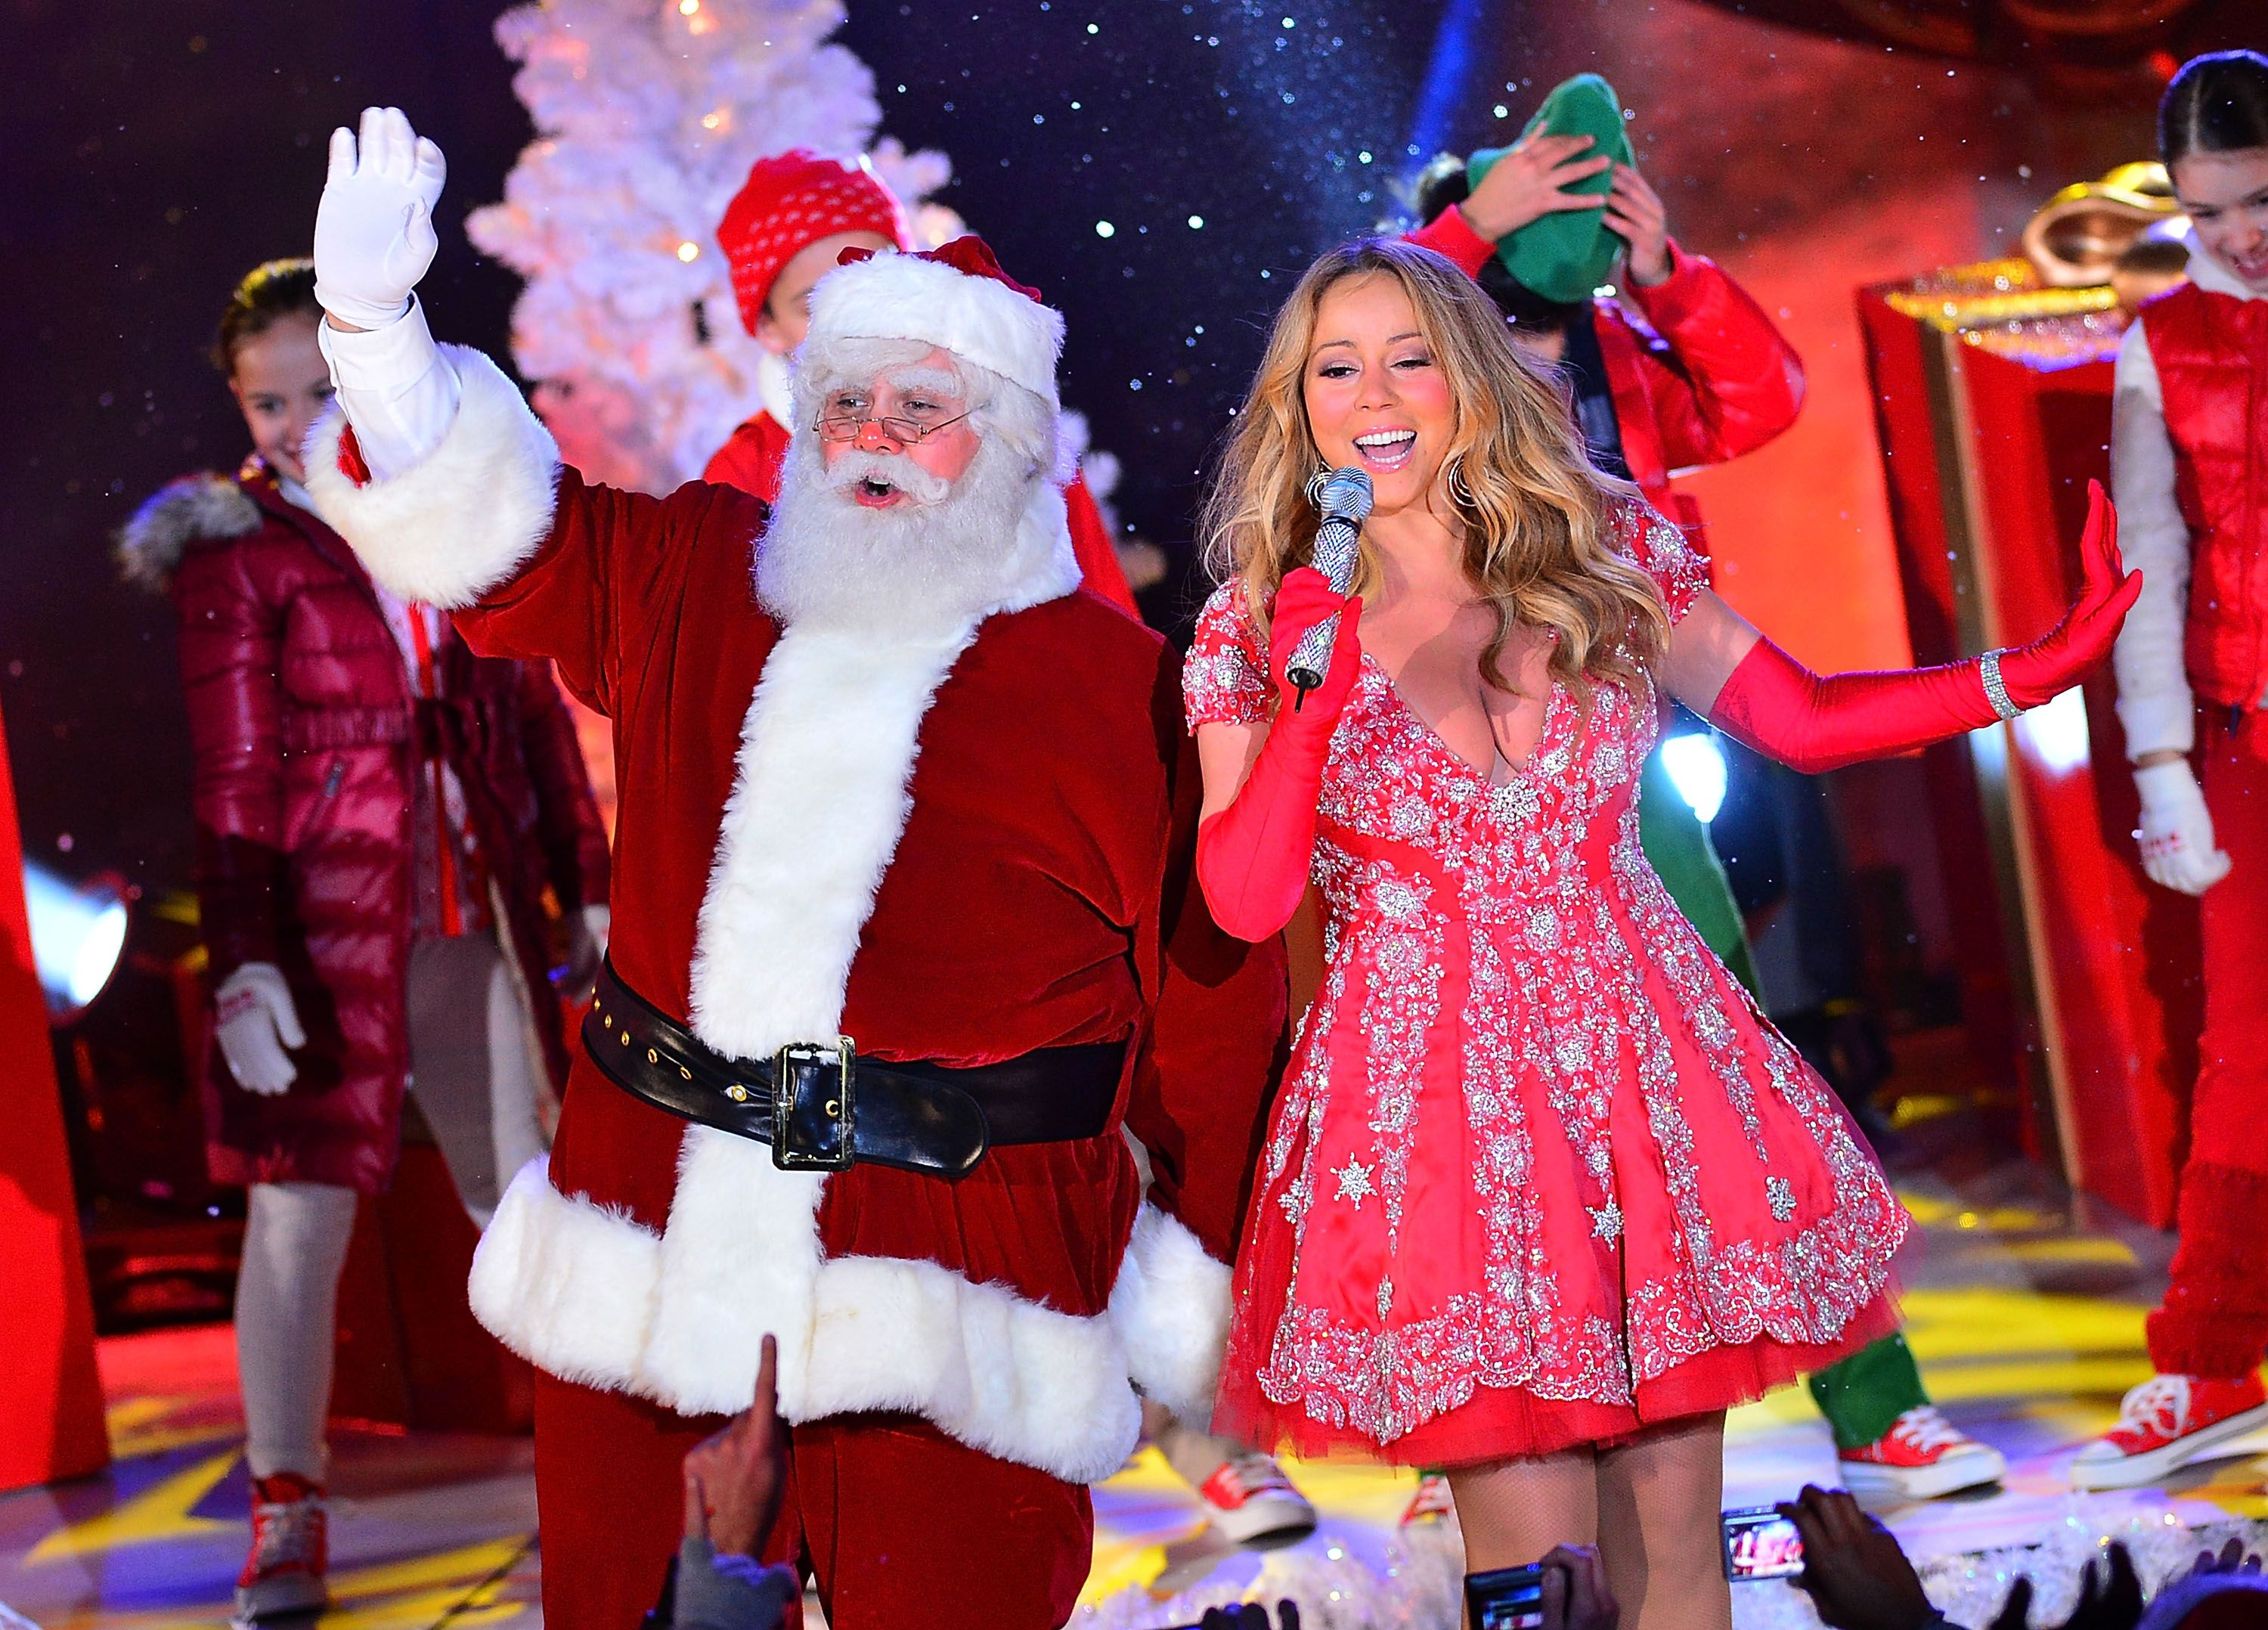 The Best Christmas Songs of All Time - Songs You Need to Listen to